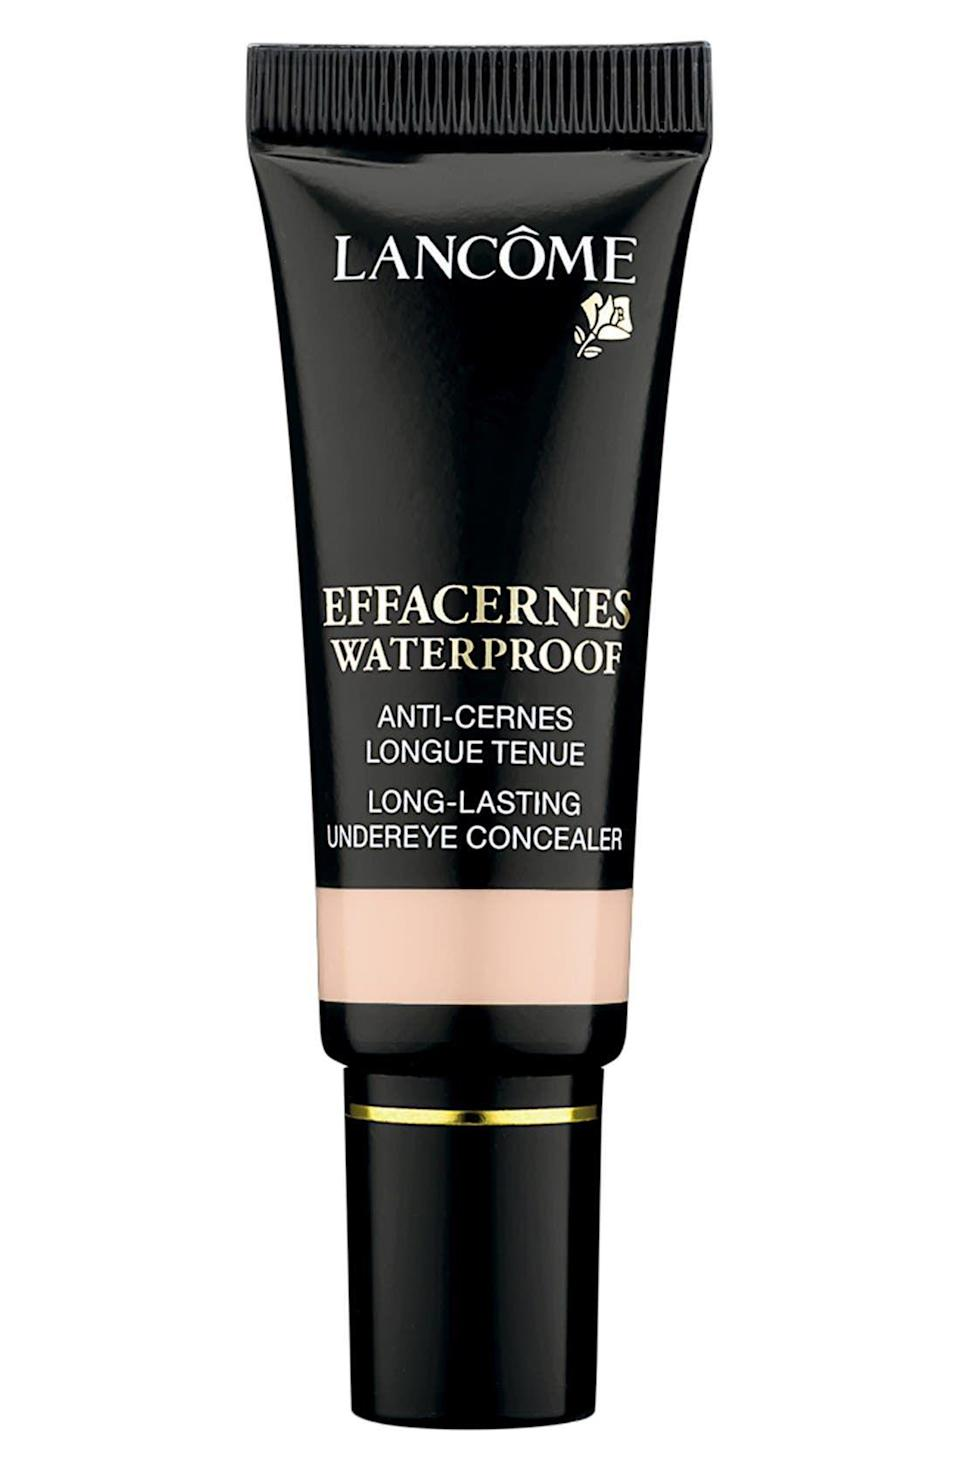 """<p><strong>LANCOME</strong></p><p>nordstrom.com</p><p><strong>$31.00</strong></p><p><a href=""""https://go.redirectingat.com?id=74968X1596630&url=https%3A%2F%2Fwww.nordstrom.com%2Fs%2Flancome-effacernes-waterproof-protective-undereye-concealer%2F5357331&sref=https%3A%2F%2Fwww.thepioneerwoman.com%2Fbeauty%2Fskin-makeup-nails%2Fg36563969%2Fbest-concealers-for-mature-skin%2F"""" rel=""""nofollow noopener"""" target=""""_blank"""" data-ylk=""""slk:Shop Now"""" class=""""link rapid-noclick-resp"""">Shop Now</a></p><p>This waterproof concealer has earned hundreds of stellar reviews for its longwear formula, which offers an incredibly natural coverage when applied.</p>"""